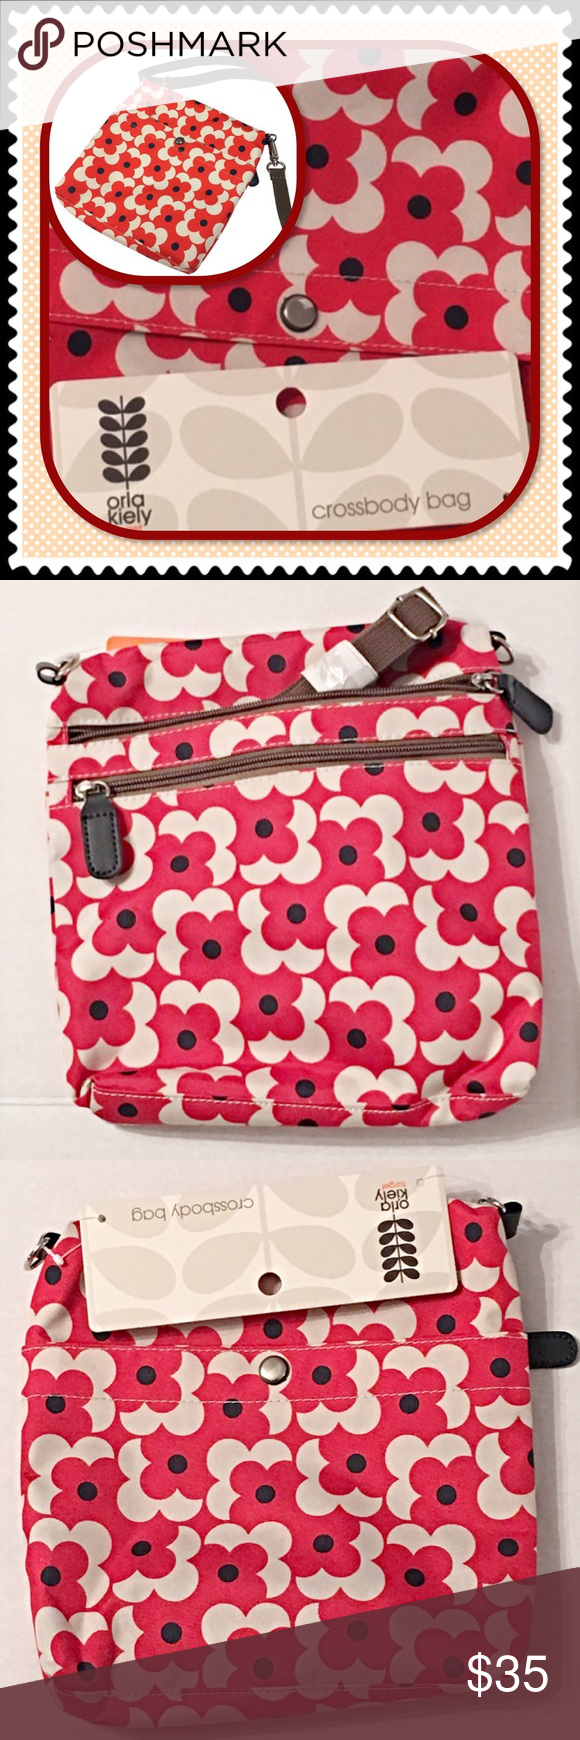 Nwt Orla Kiely Crossbody Bag Target Purse Firm Price Red Shadow